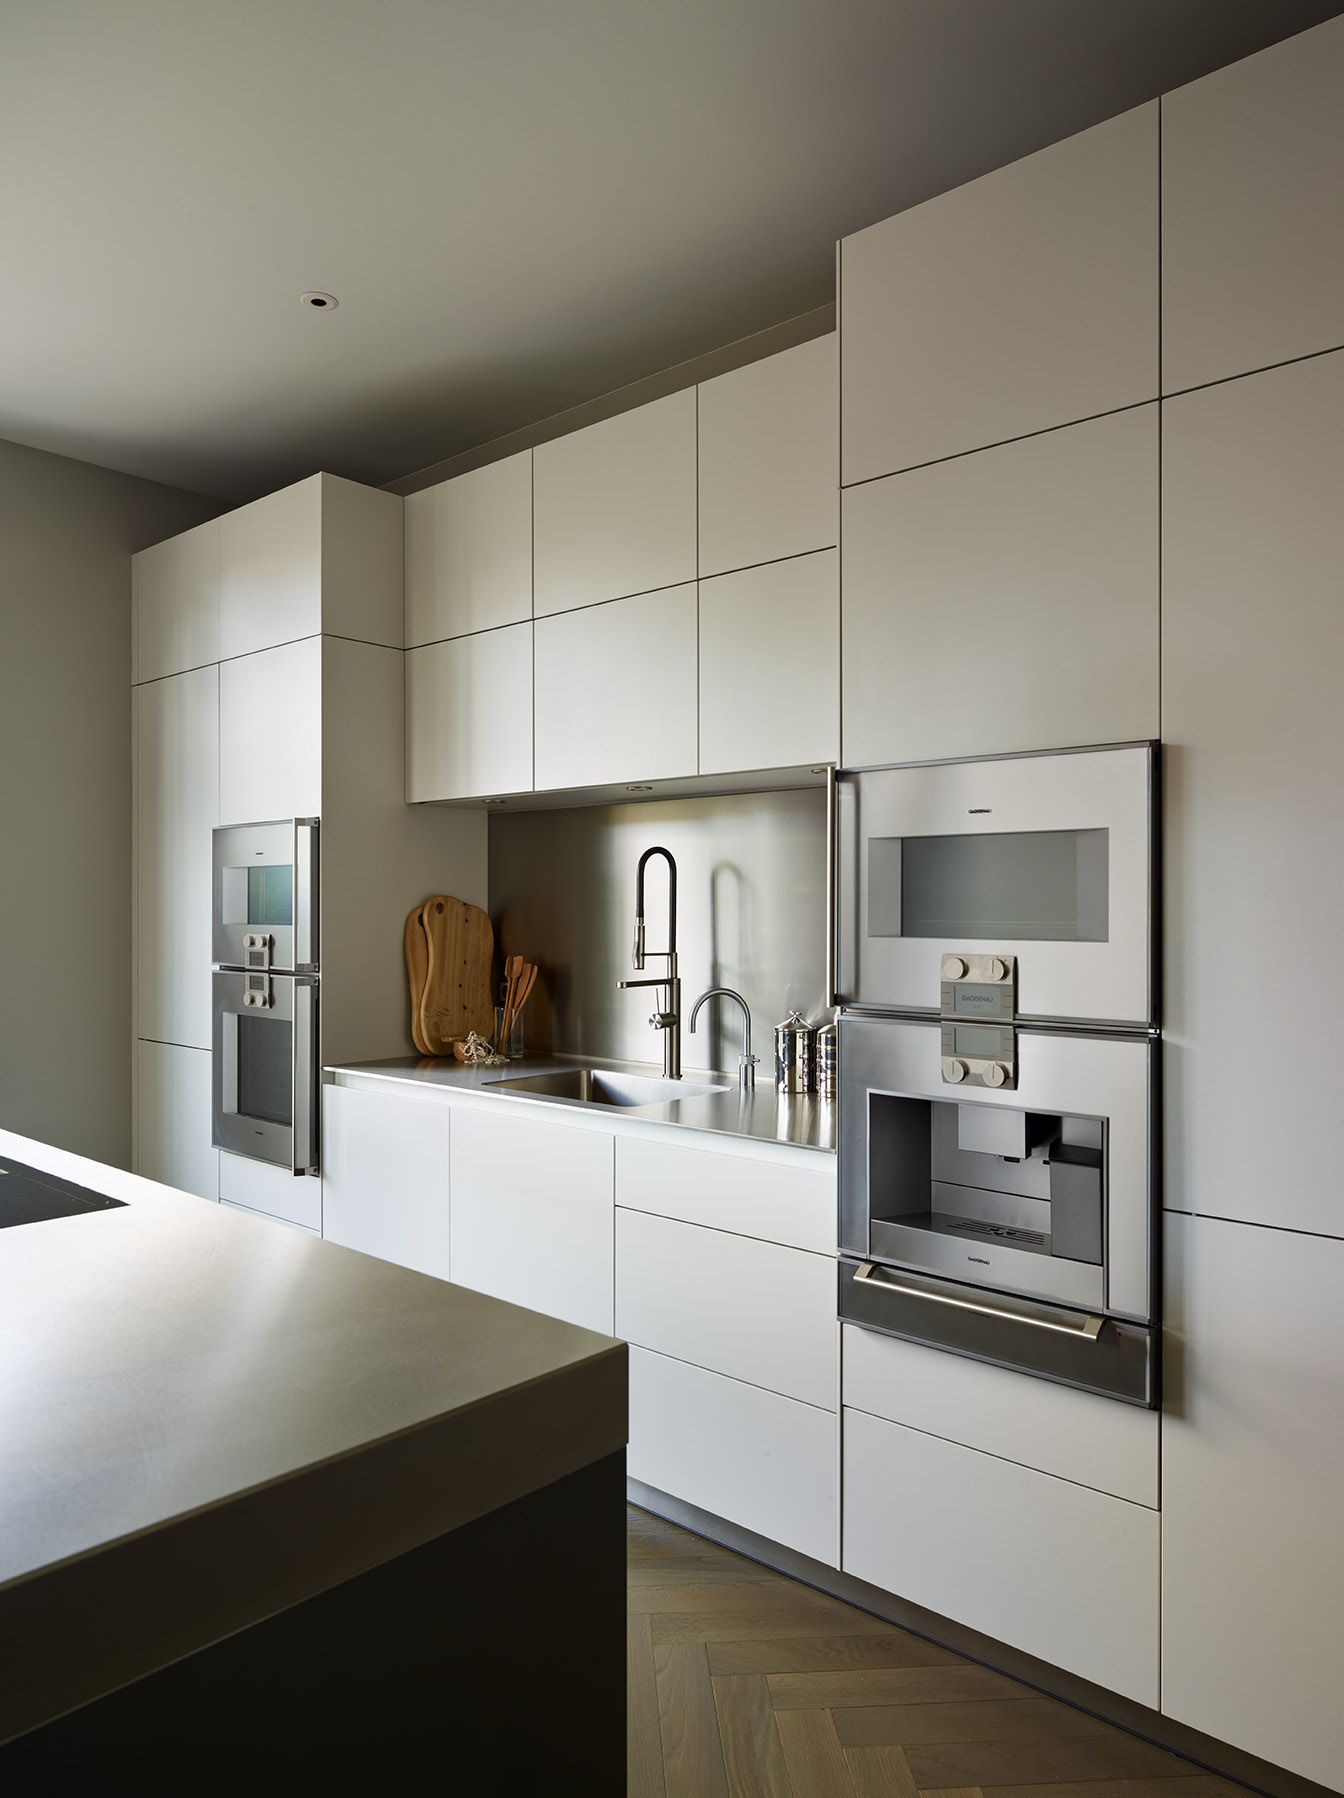 Bulthaup By Kitchen Architecture Kitchens Kitchenarchitecture  # Muebles Bulthaup